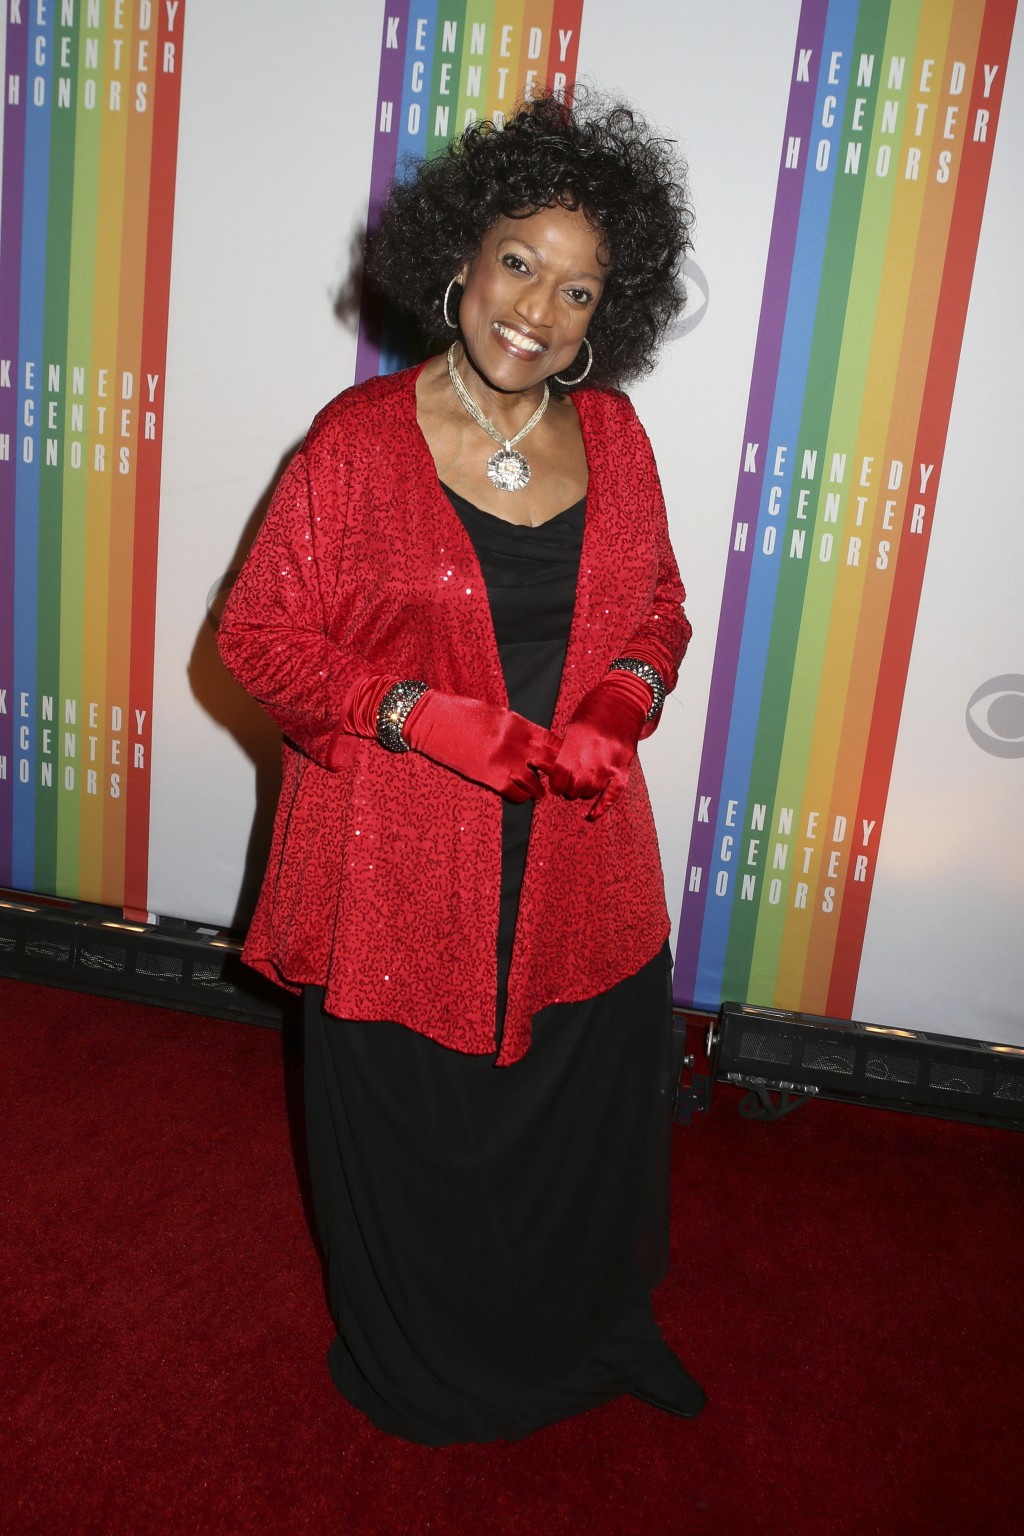 FILE - This Dec. 8, 2013 file photo shows Jessye Norman at the 2013 Kennedy Center Honors at the Kennedy Center for the Performing Arts in Washington....